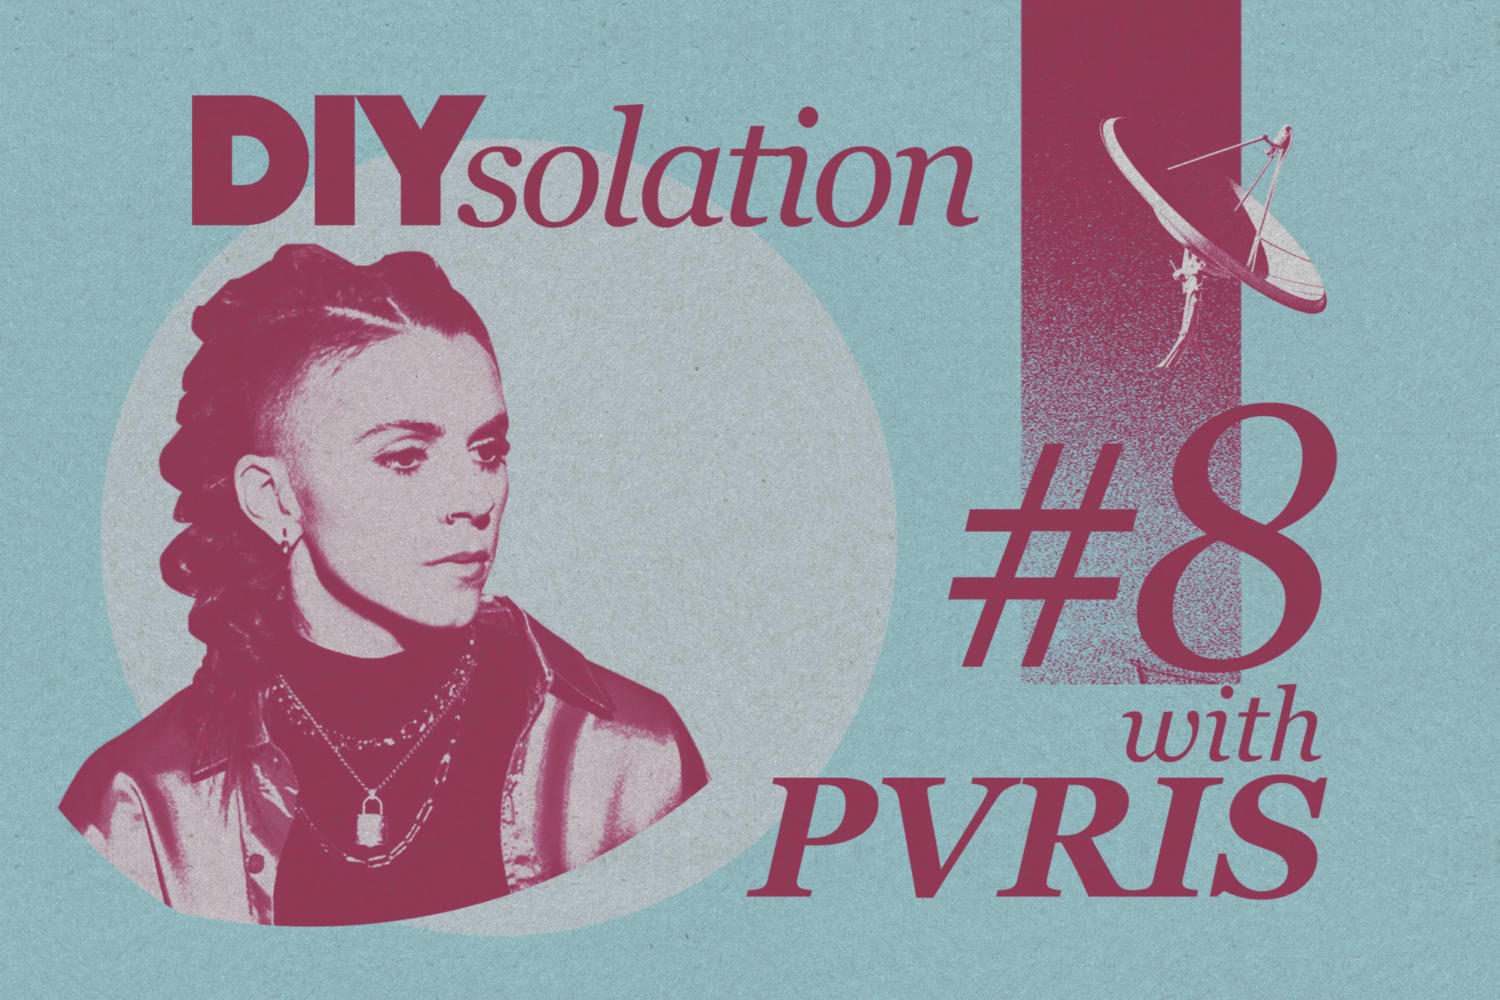 DIYsolation: #8 with PVRIS